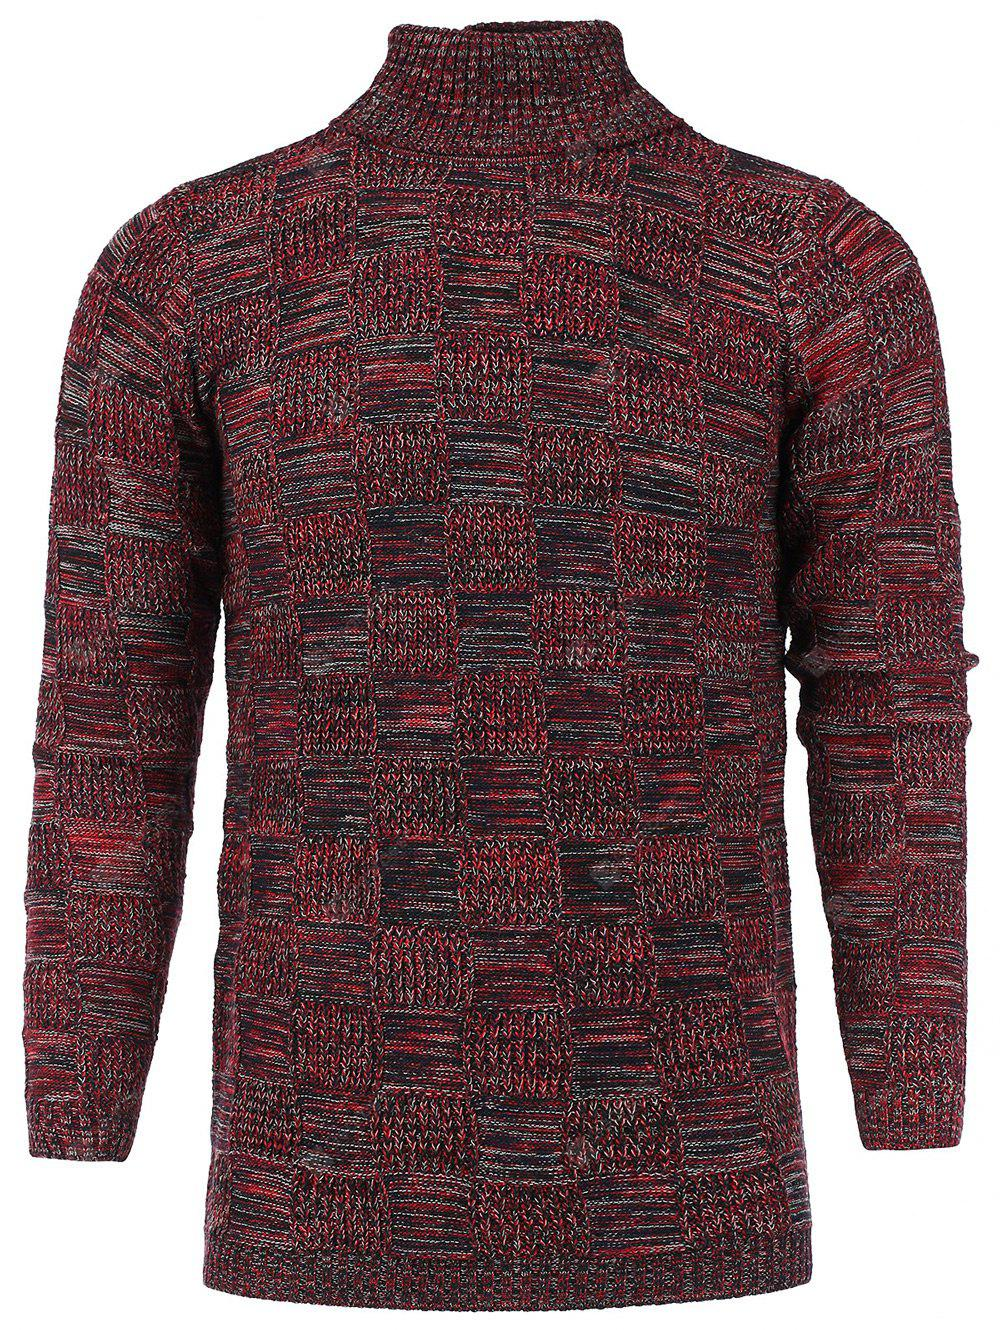 Turtle Neck Checked Knit Blends Sweater